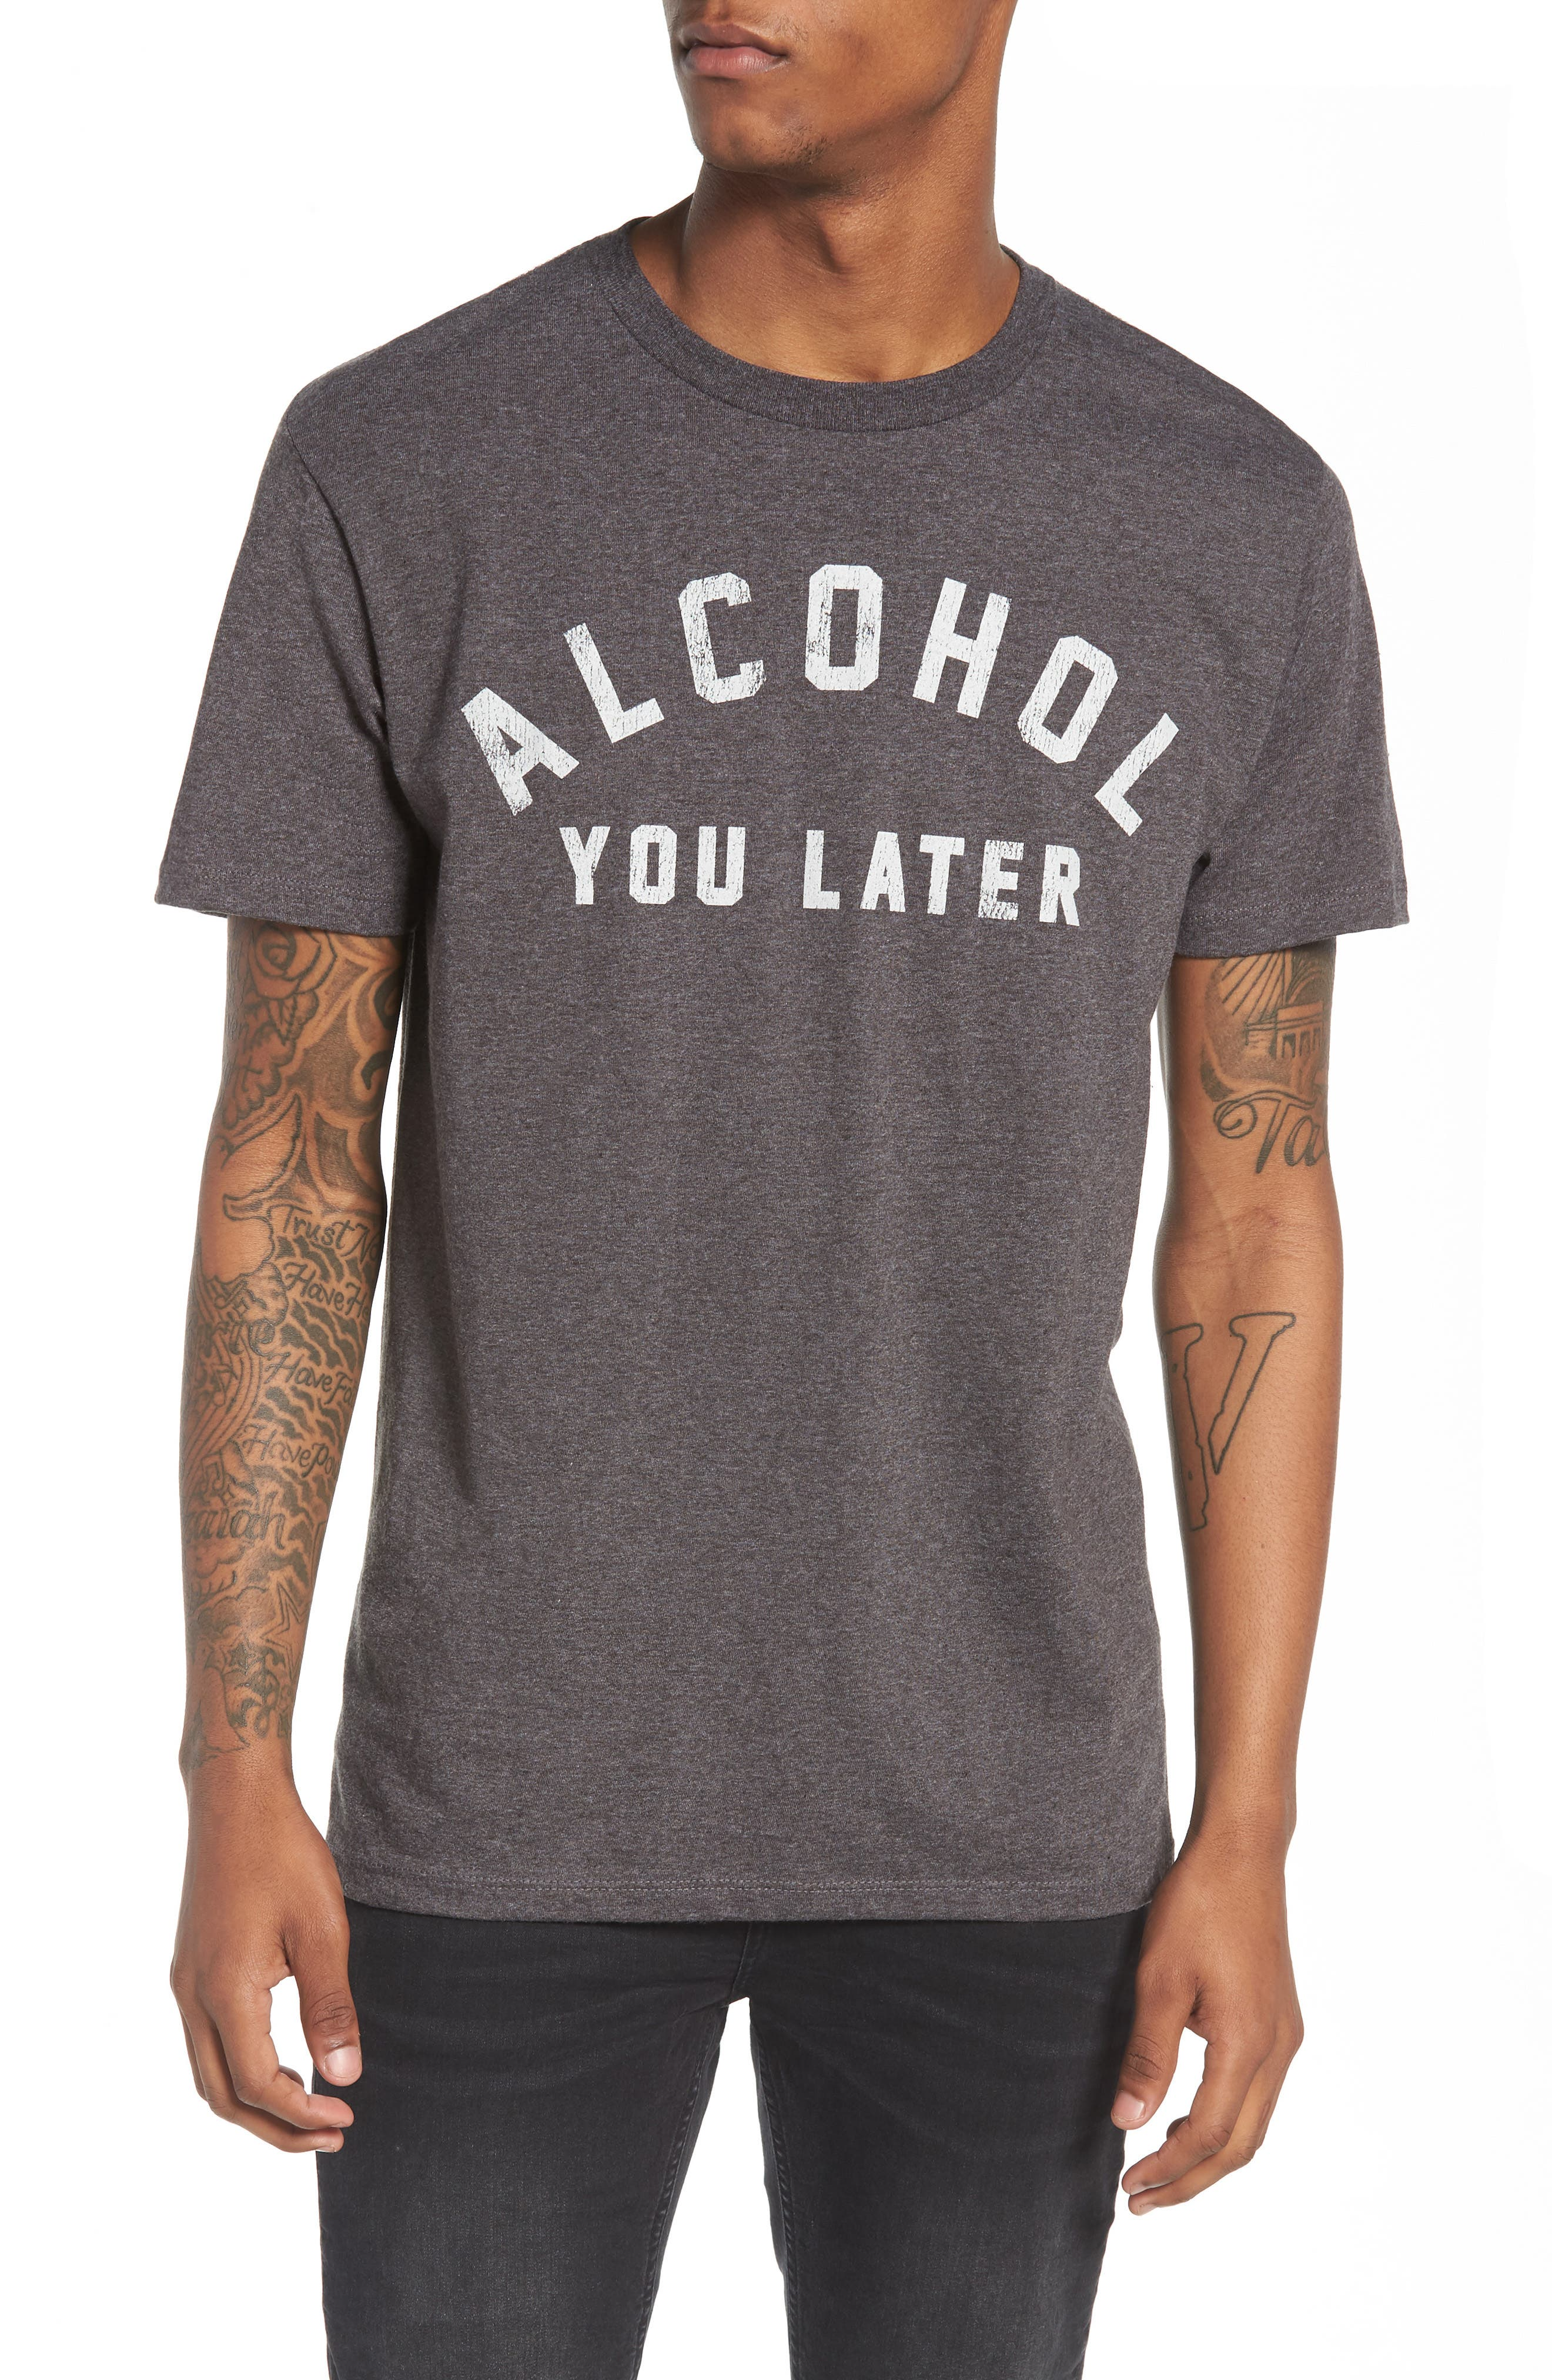 Alcohol You Later T-Shirt,                             Main thumbnail 1, color,                             Grey Charcoal Heather Alcohol